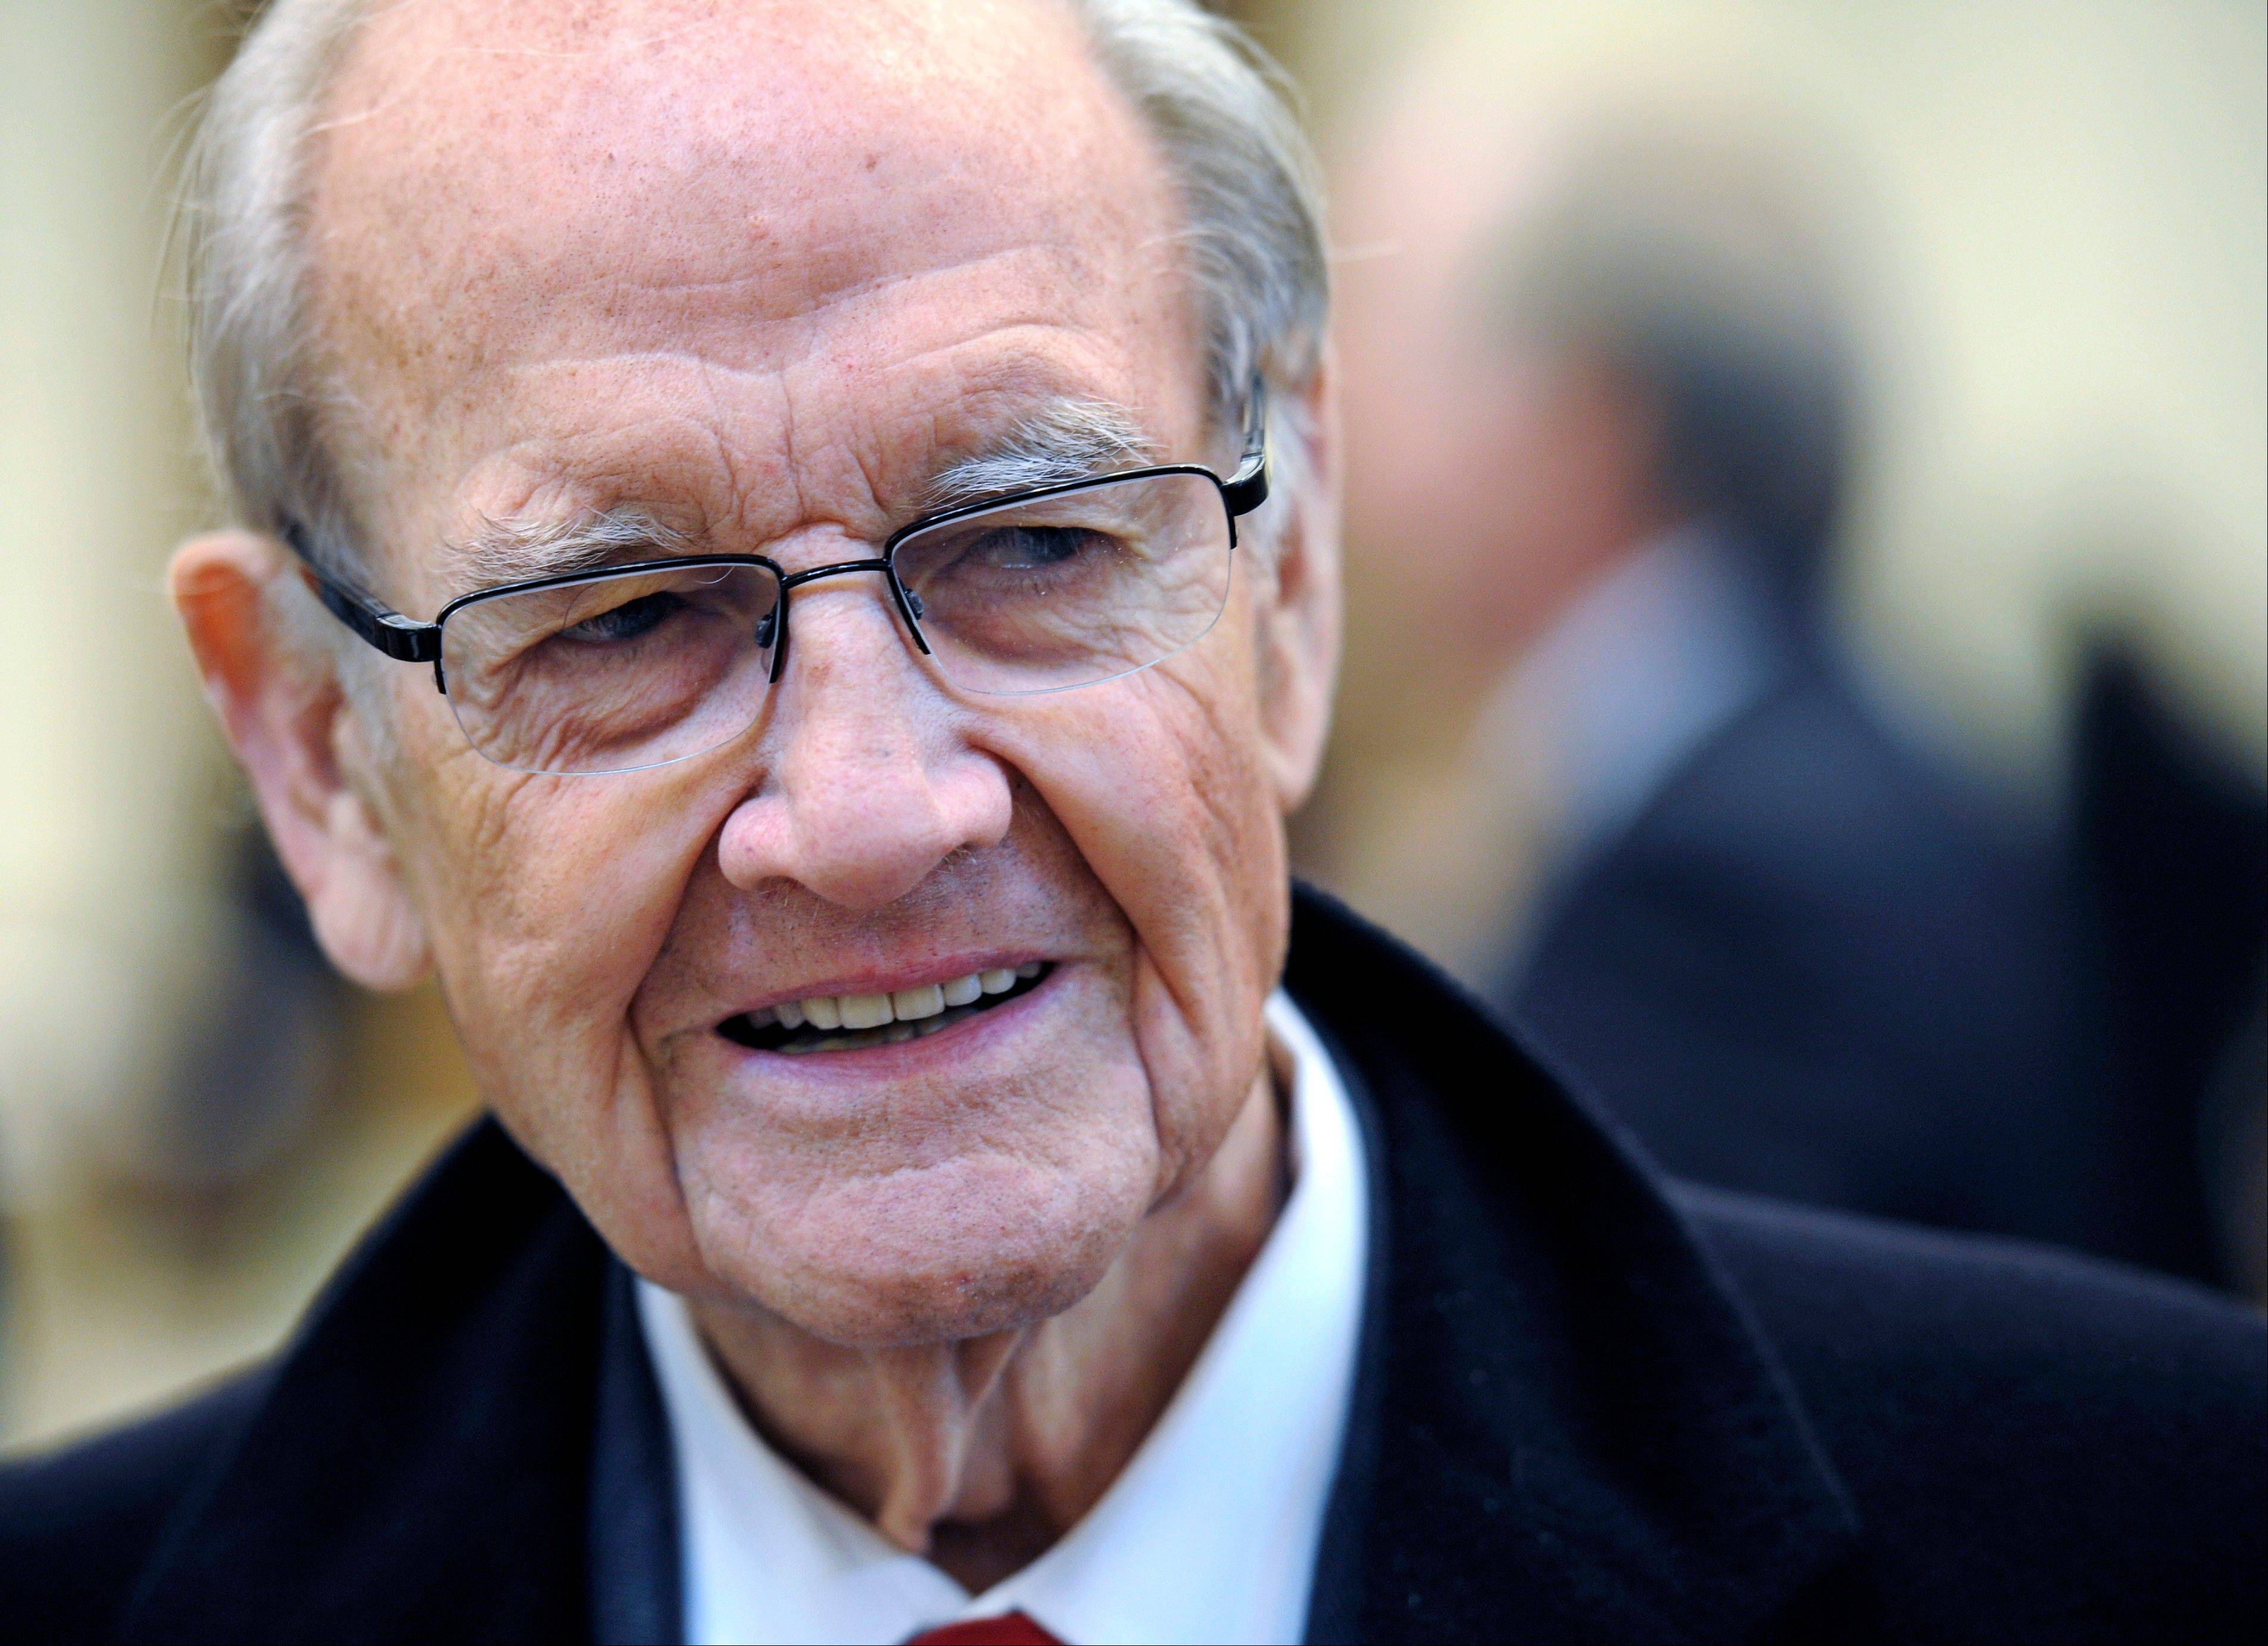 Sioux Falls, S.D. is welcoming political figures, family and friends in town Thursday to mark the life and career of former Democratic U.S. senator and three-time presidential candidate George McGovern, a legend in state's political history who died Oct. 21 at age 90.